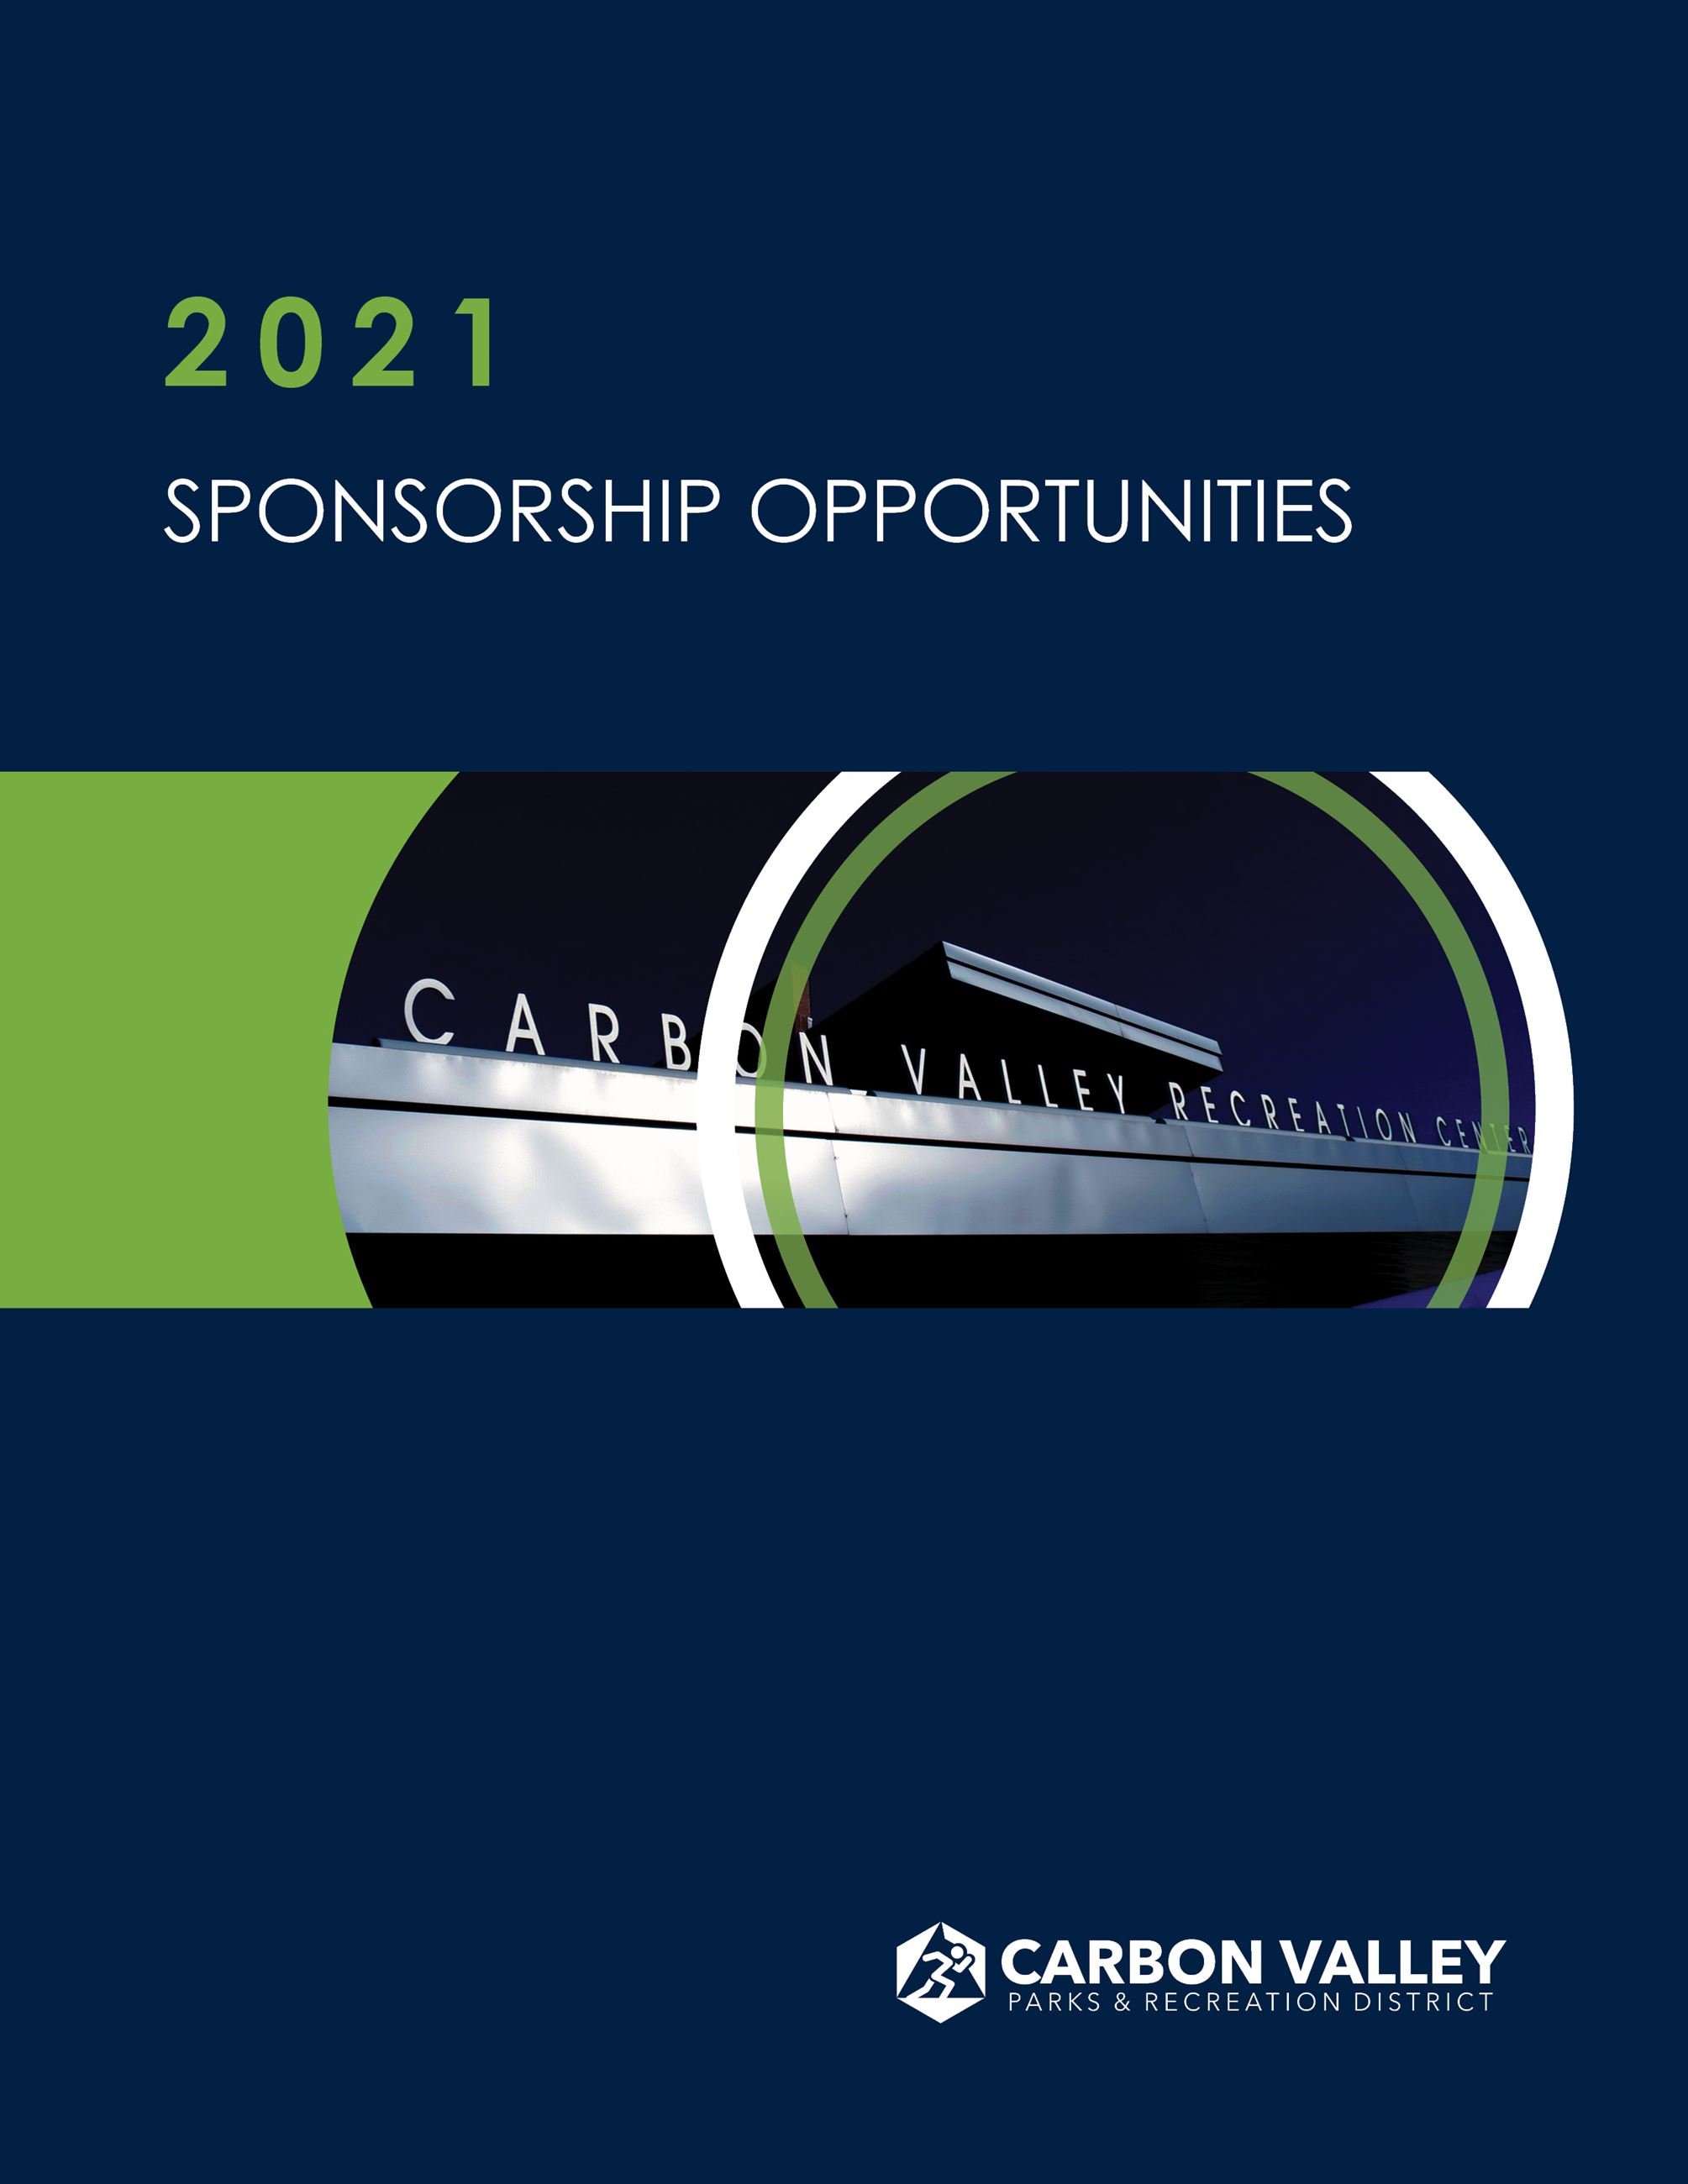 Cover of brochure that says sponsorship brochure 2021